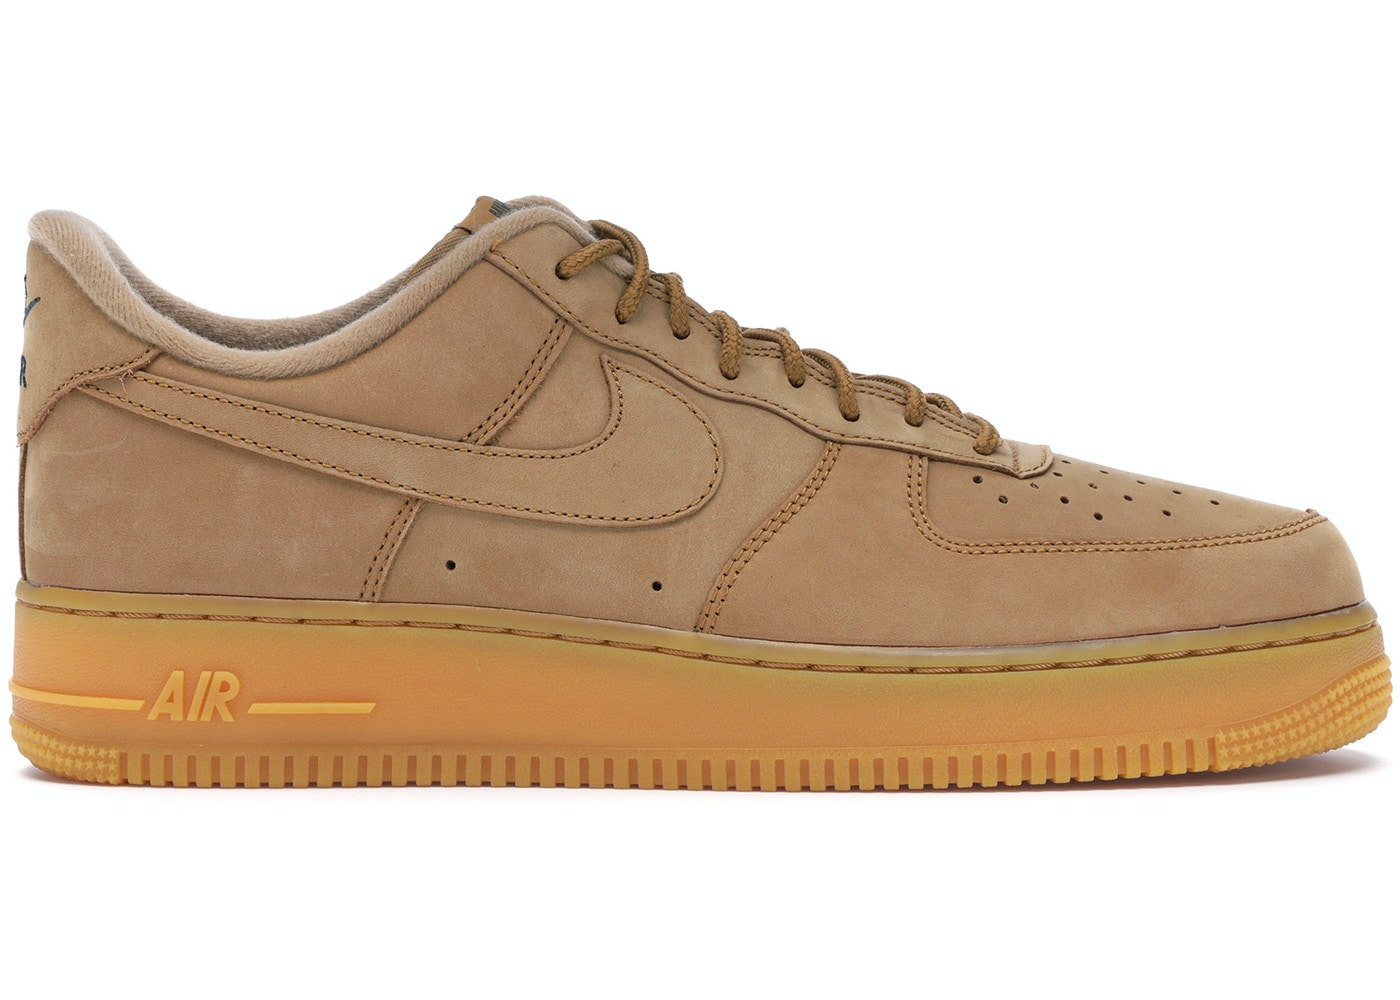 promo code 97887 81b8e Buy Nike Air Force Shoes   Deadstock Sneakers